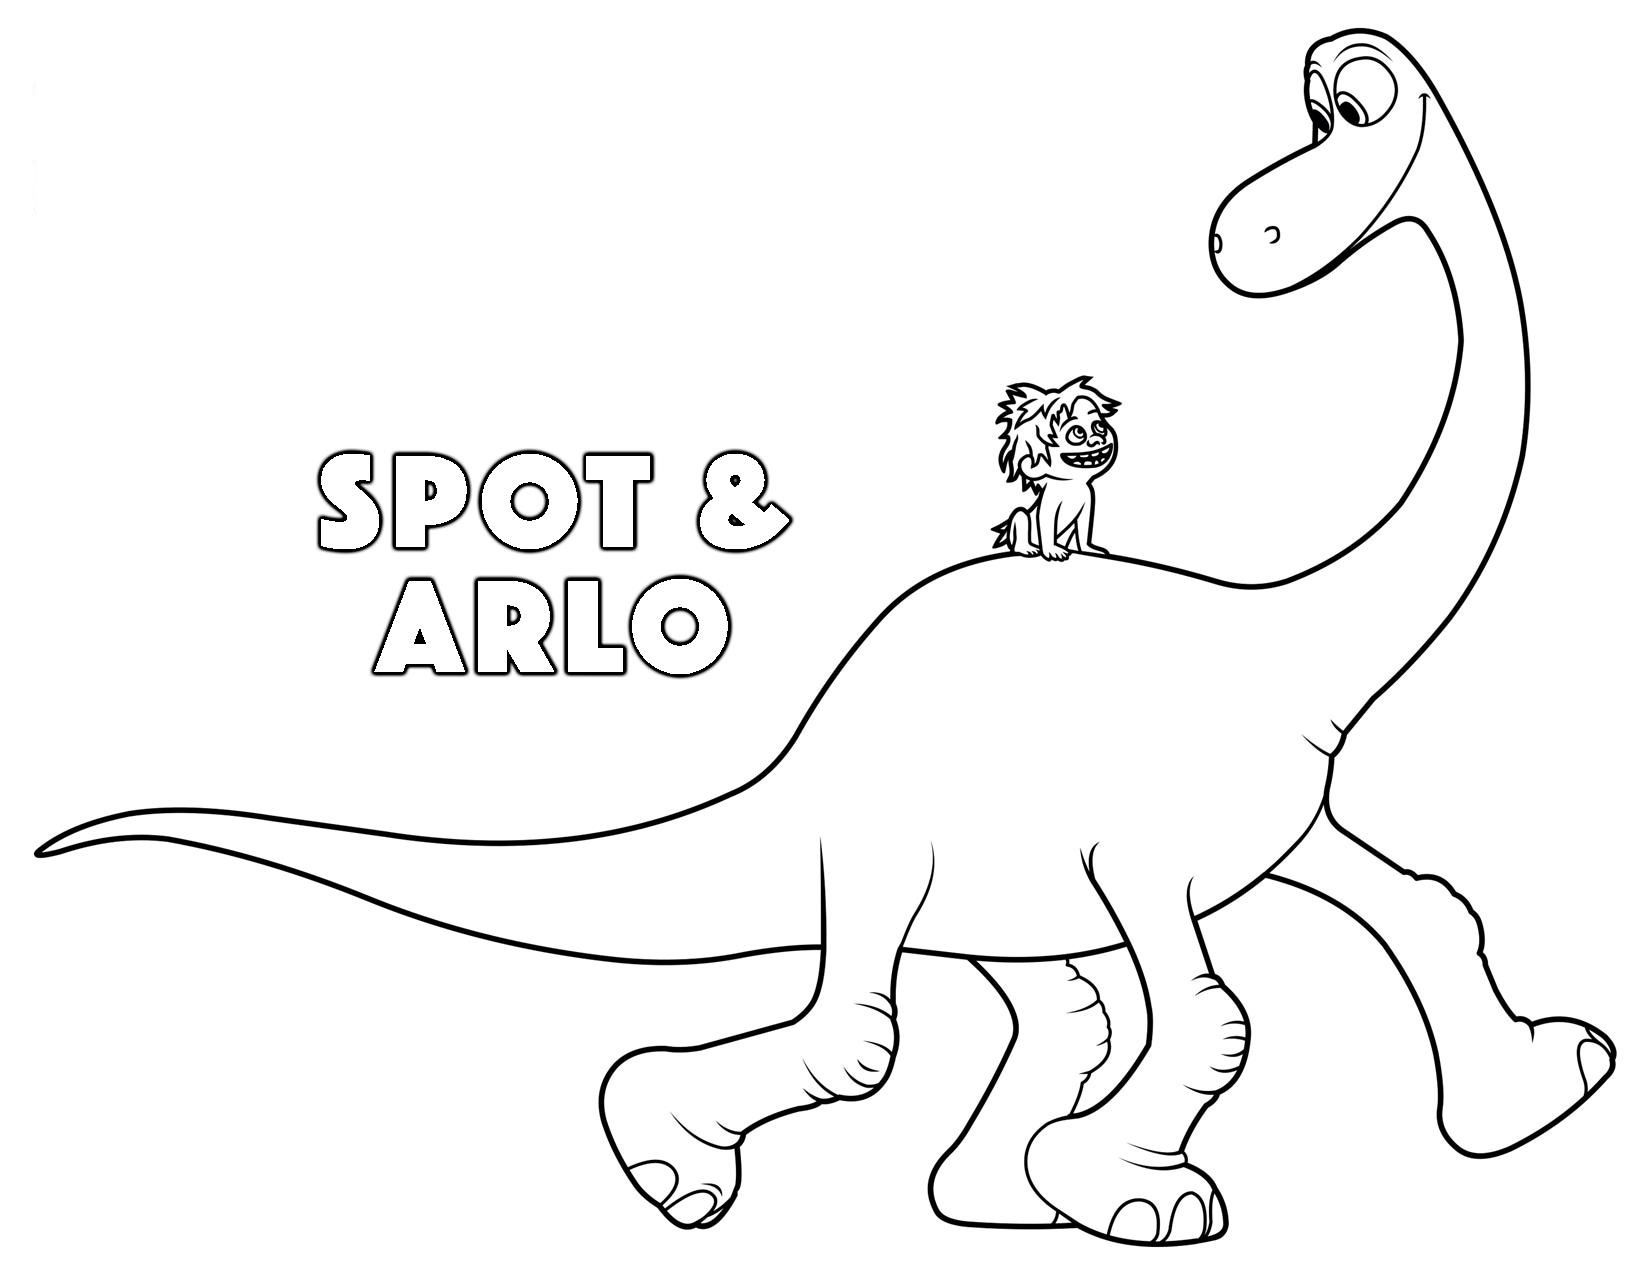 Dinosaurier Malvorlagen Ausmalbilder : The Good Dinosaur Arlo And Spot Coloring Pages Rifat Hamna Pinterest